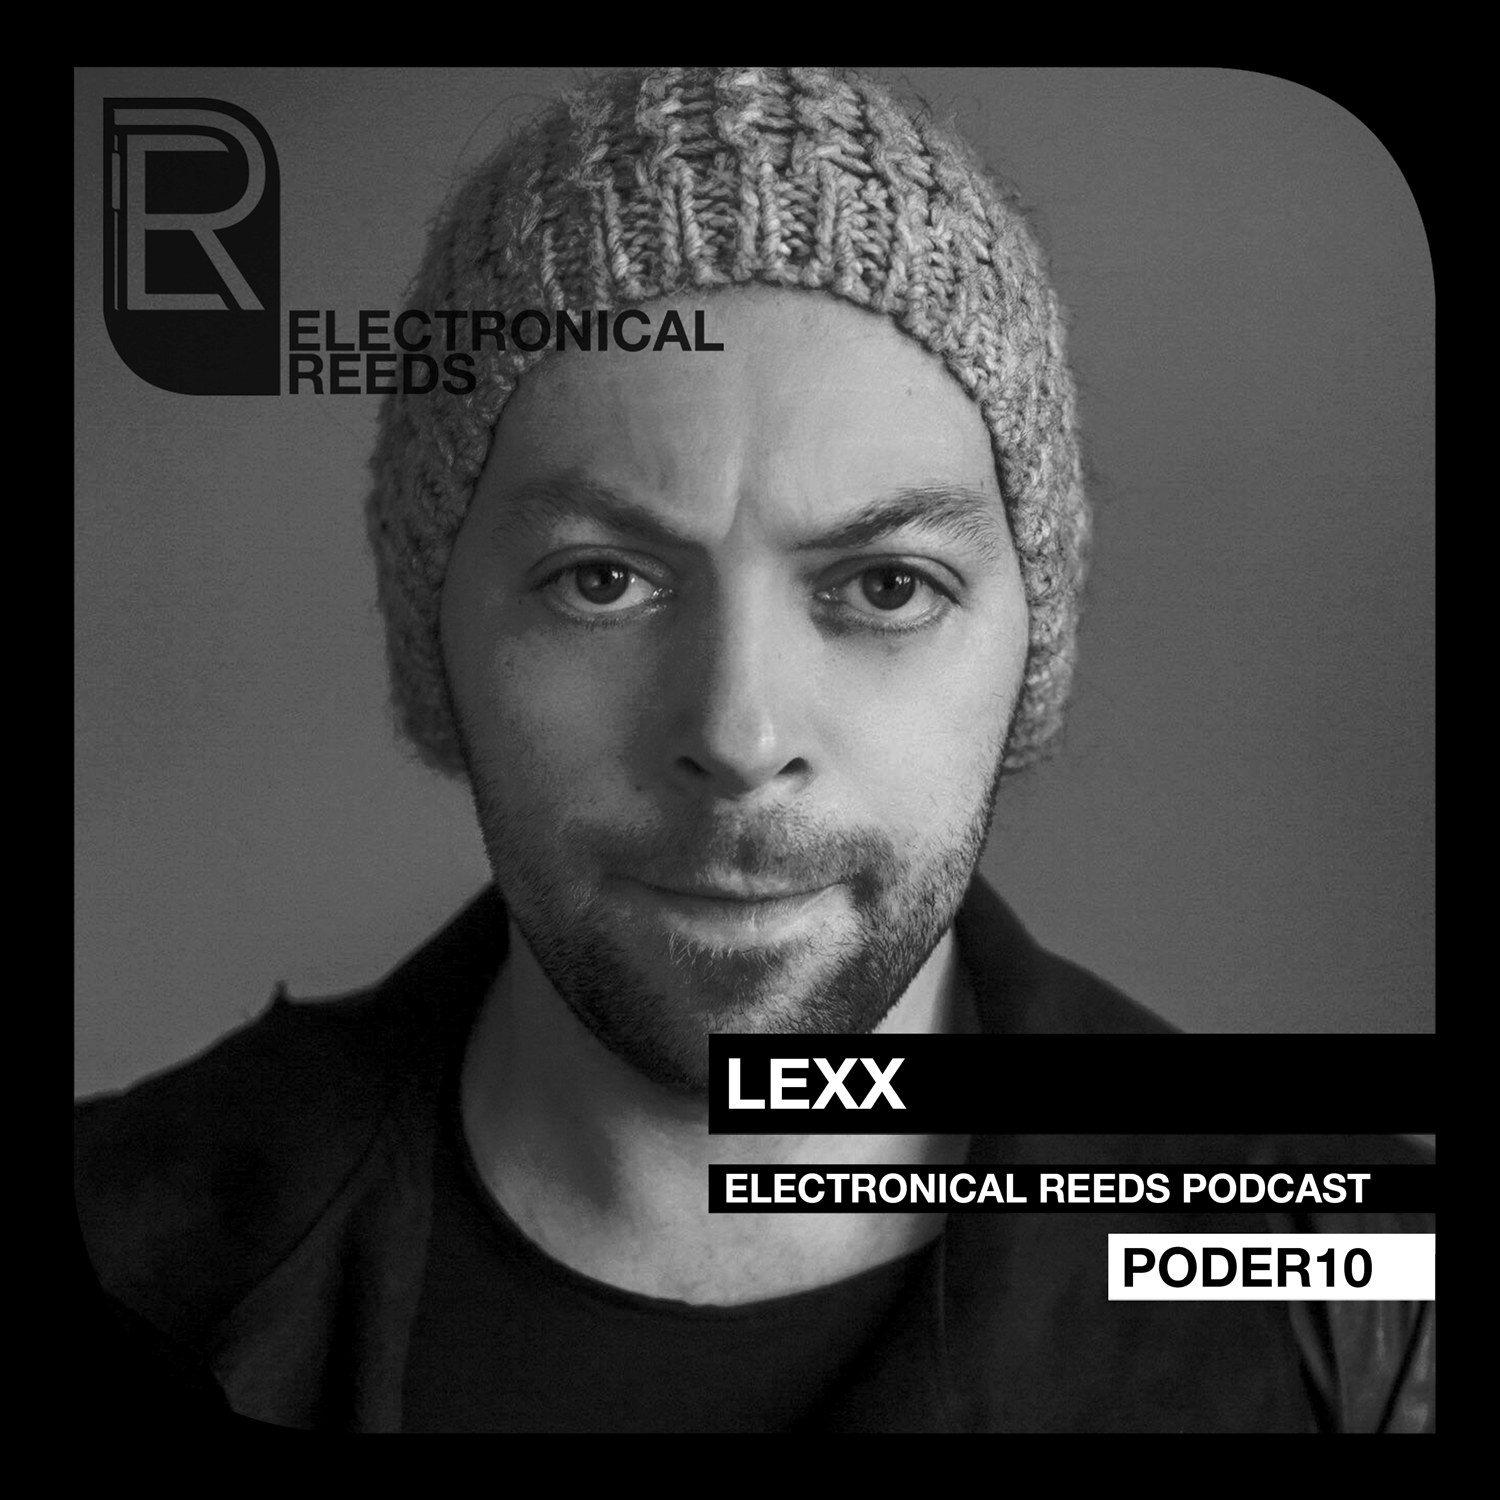 Lexx - Electronical Reeds Podcast #10